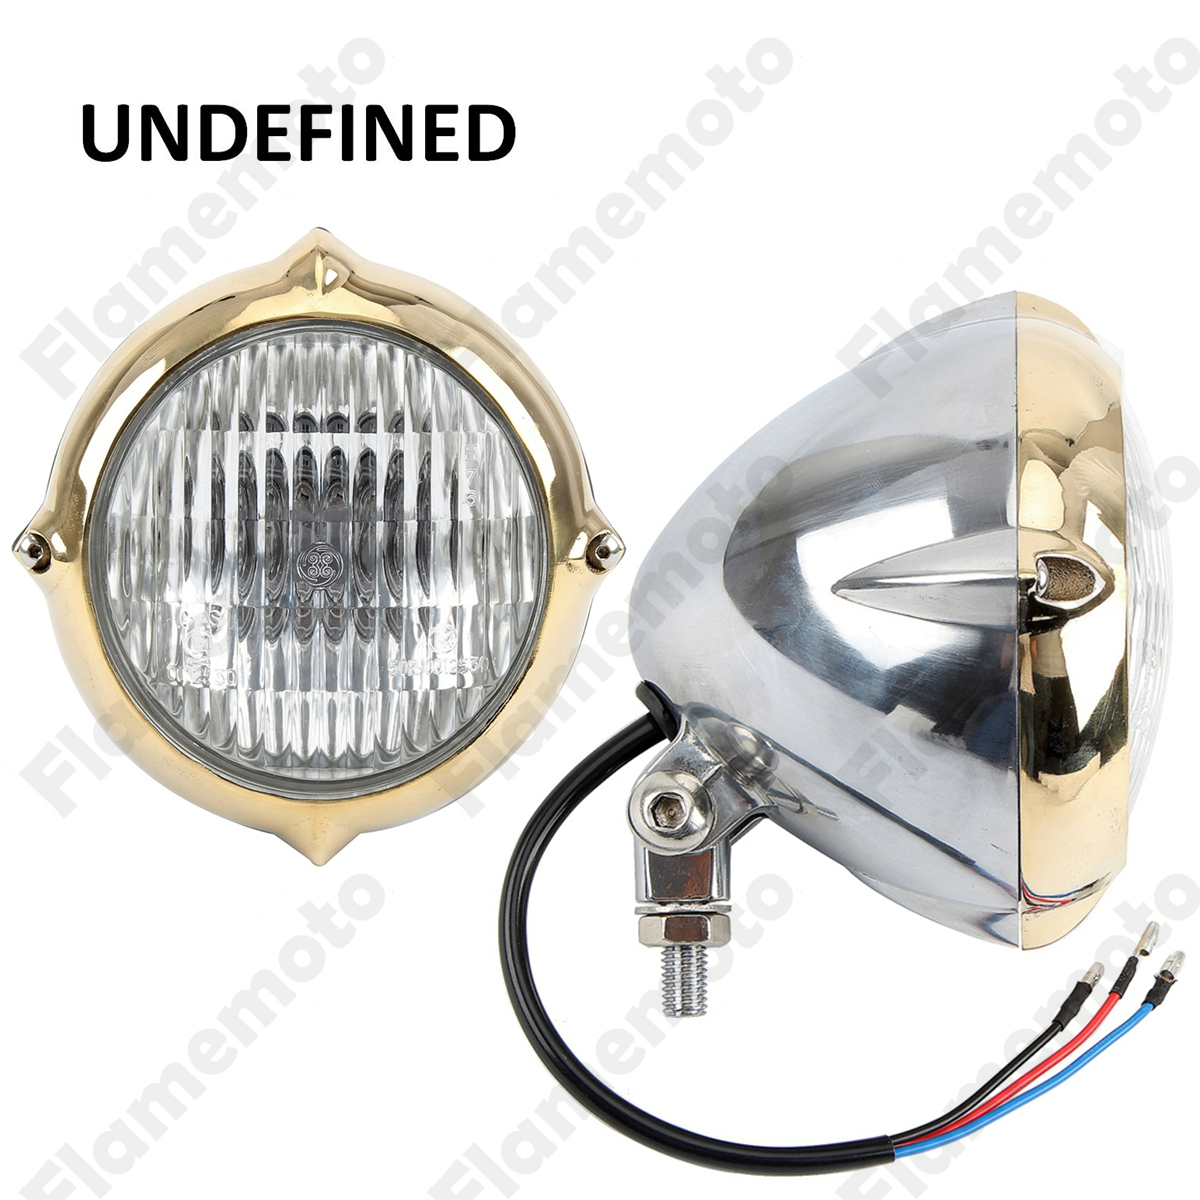 Motorcycle Parts High Quality Aluminium 5.5 Chrome Vintage Headlight 10mm For Cafe Racer Old School Copper Ring UNDEFINED